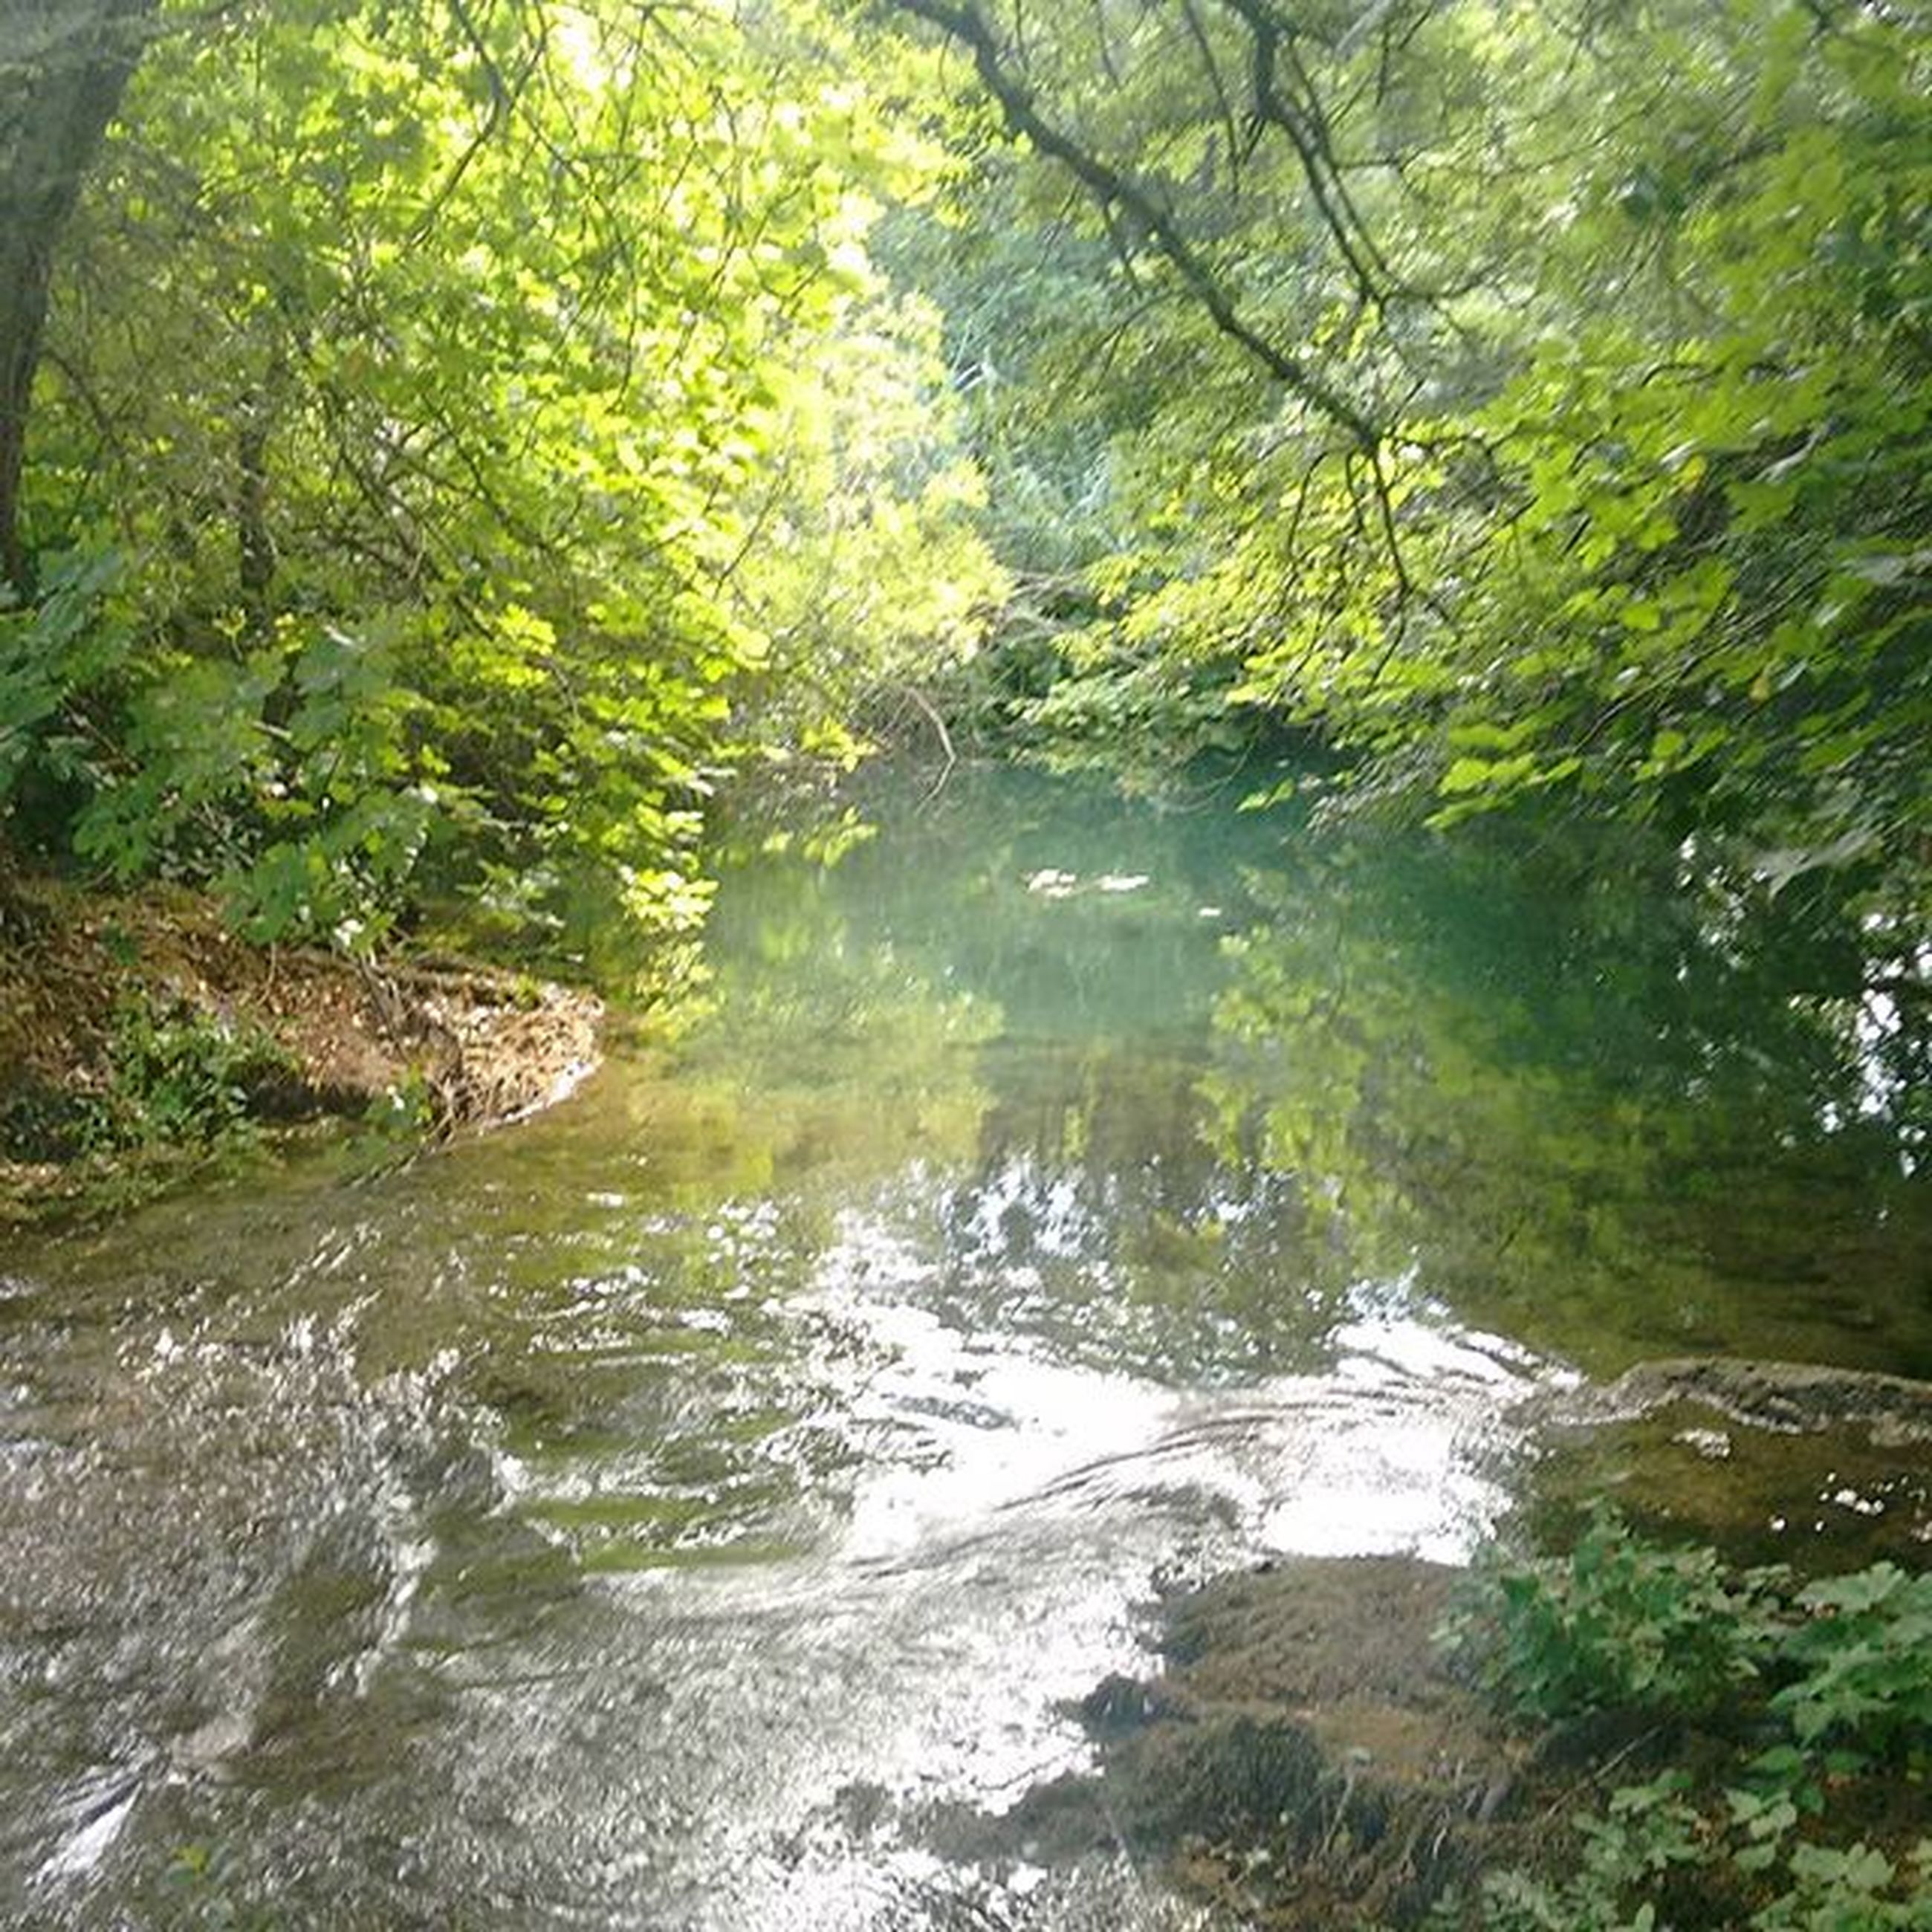 water, tree, tranquility, reflection, nature, tranquil scene, river, forest, stream, beauty in nature, scenics, waterfront, growth, lake, branch, green color, day, no people, outdoors, non-urban scene